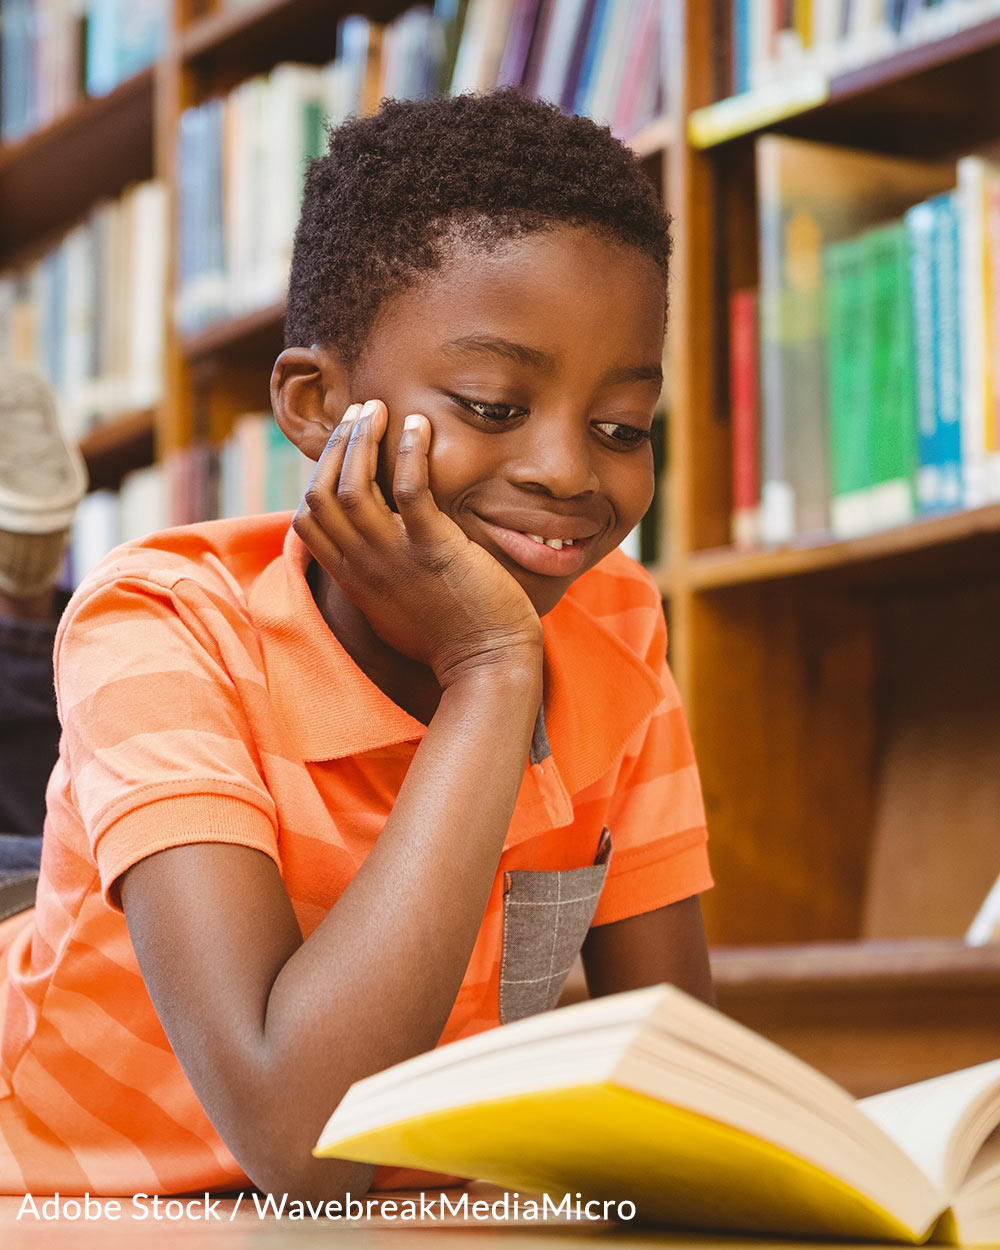 Youth reading has decreased as educators are forced to distance themselves from students.